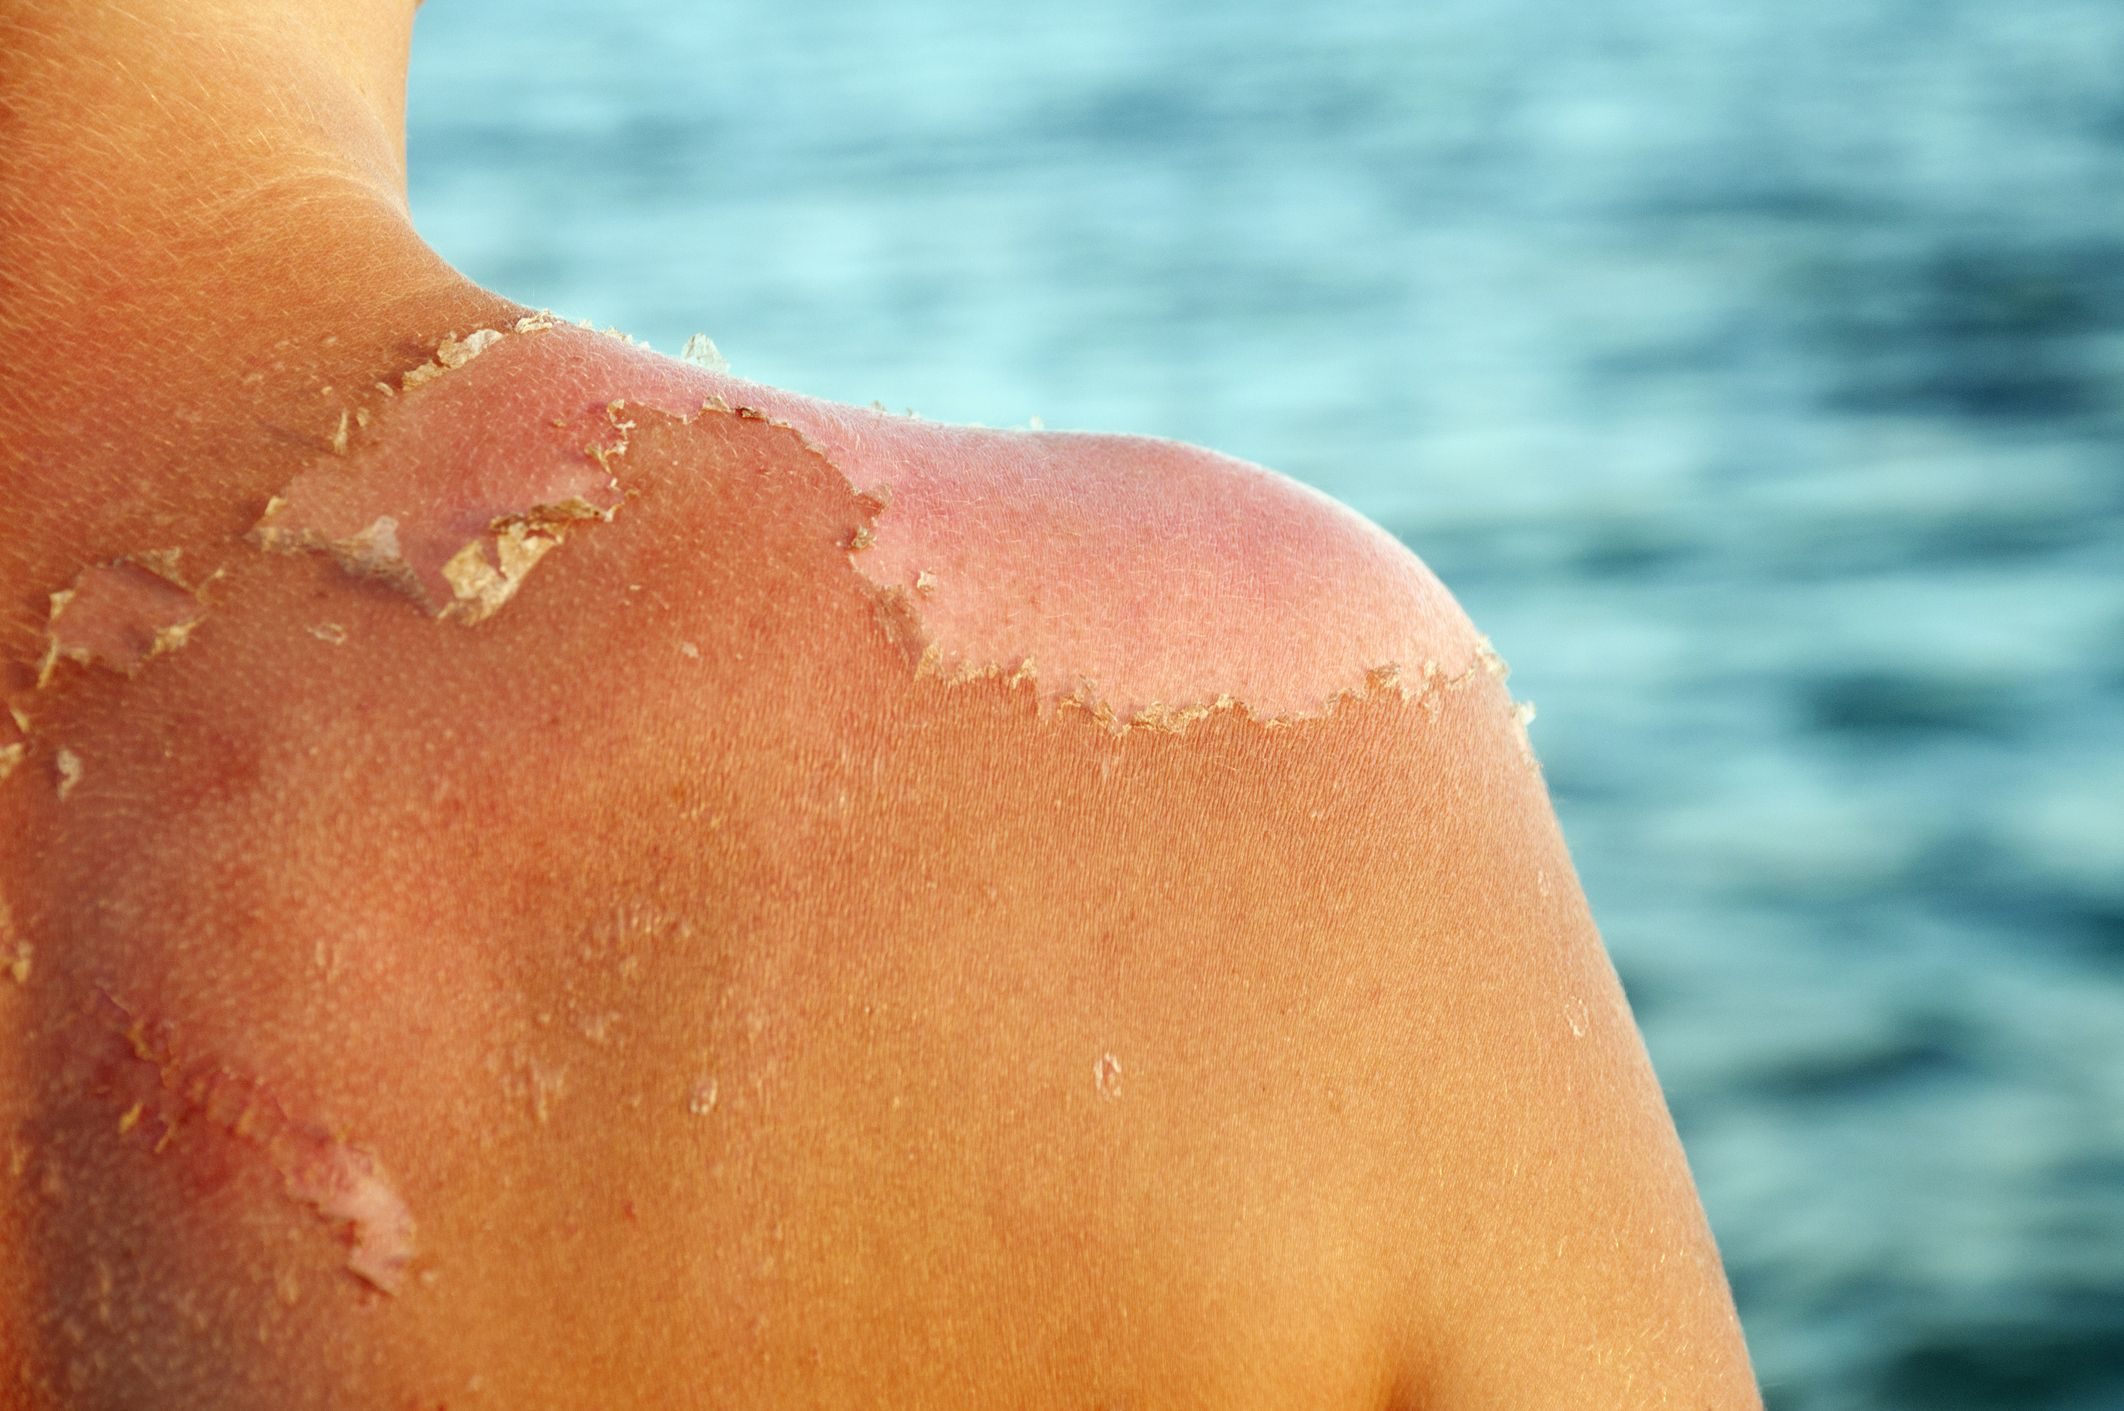 Sunburn Peeling - Why Sunburned Skin Peels & How to Stop It